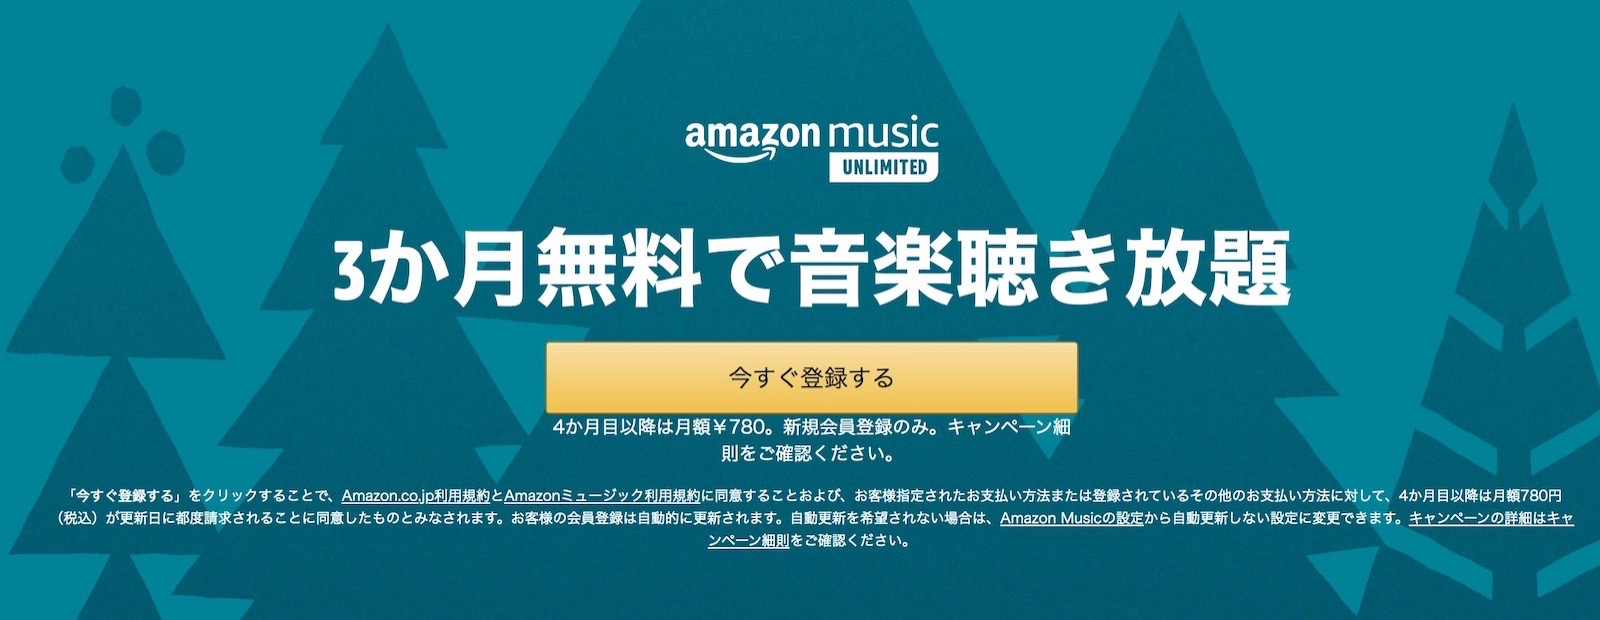 Amazon music unlimited 3months free